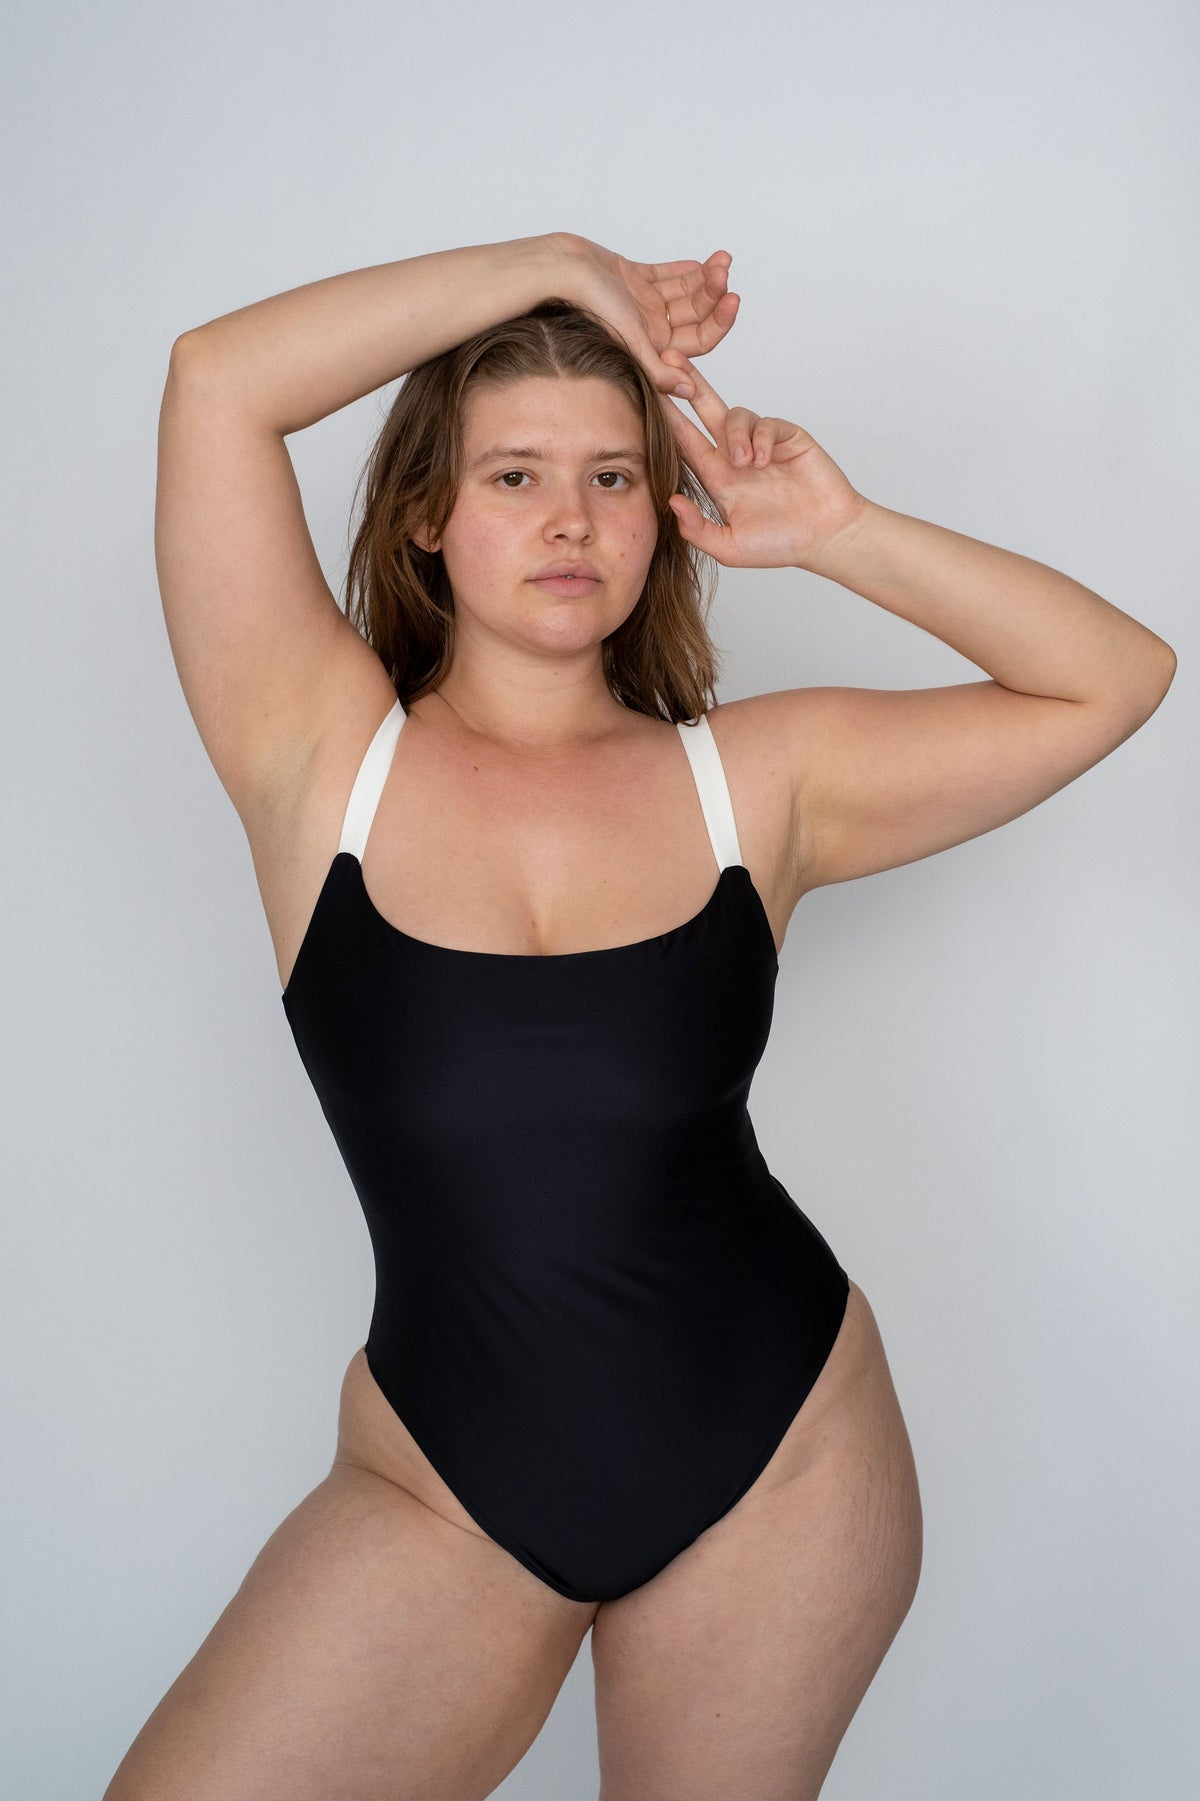 A woman standing with her hands above her head wearing a black one piece swimsuit with white thick spaghetti straps.